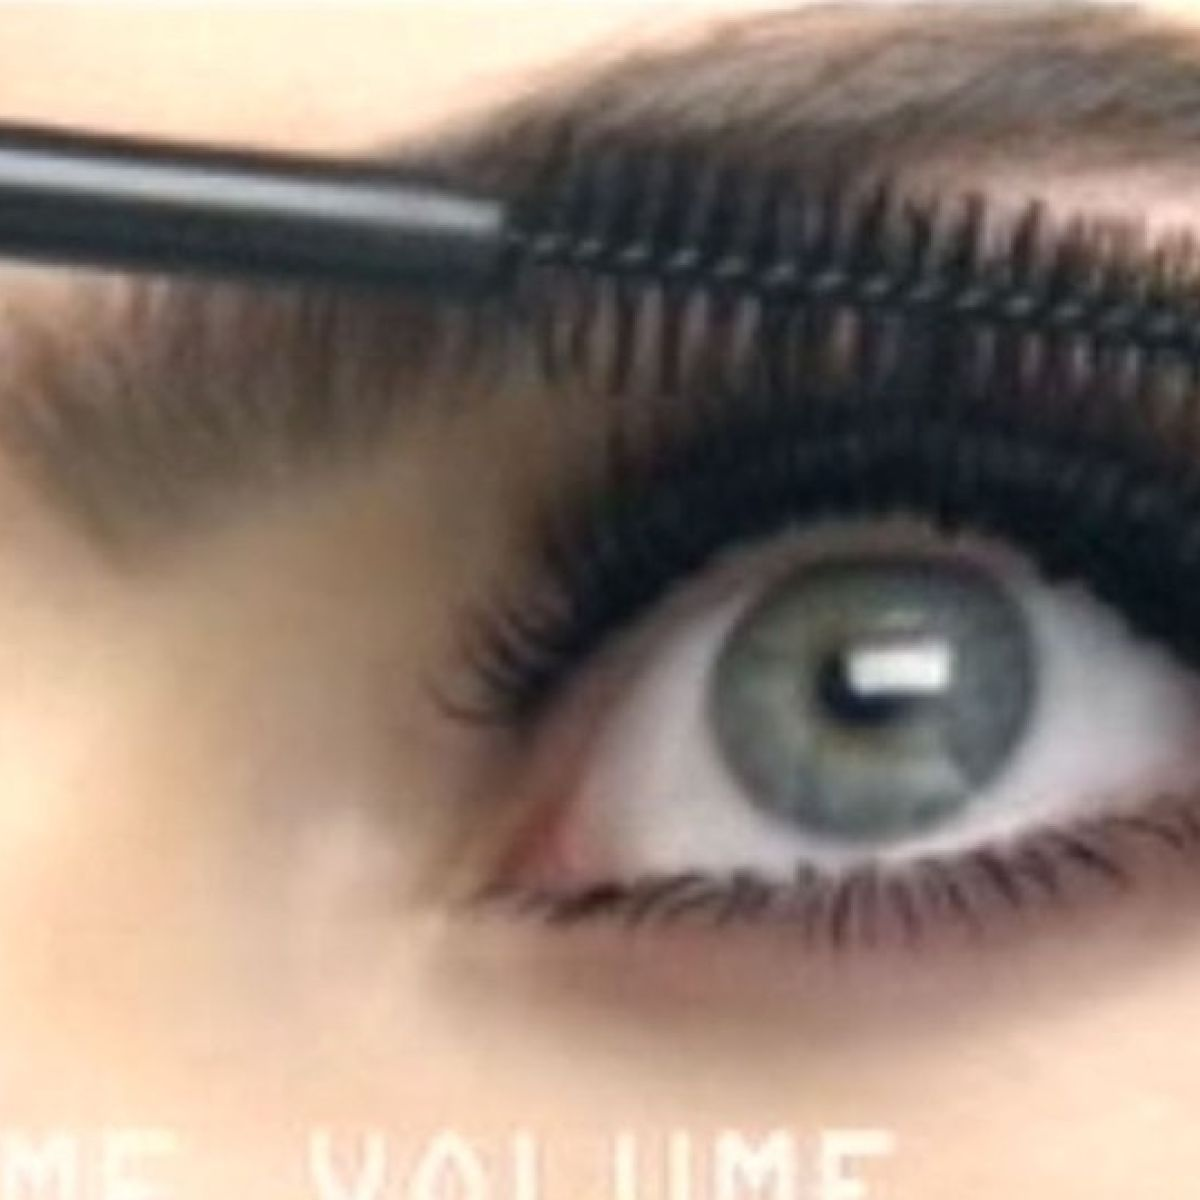 Cara Delevingnes Rimmel Mascara Advert Is Banned For Being Misleading